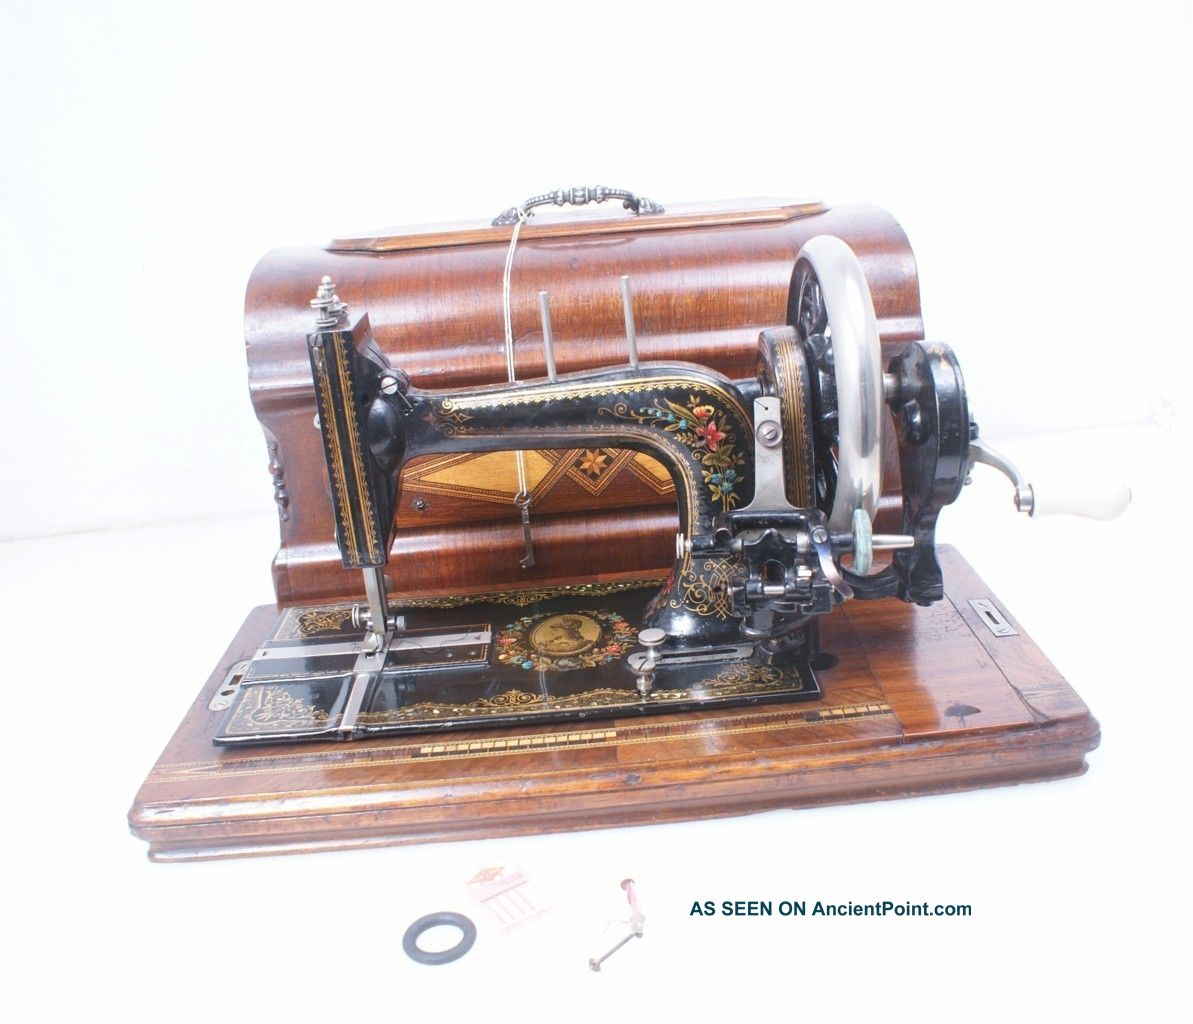 Antique 1897 - 1901 German Stoewer Hand Crank Sewing Machine Victorian Beauty Sewing Machines photo